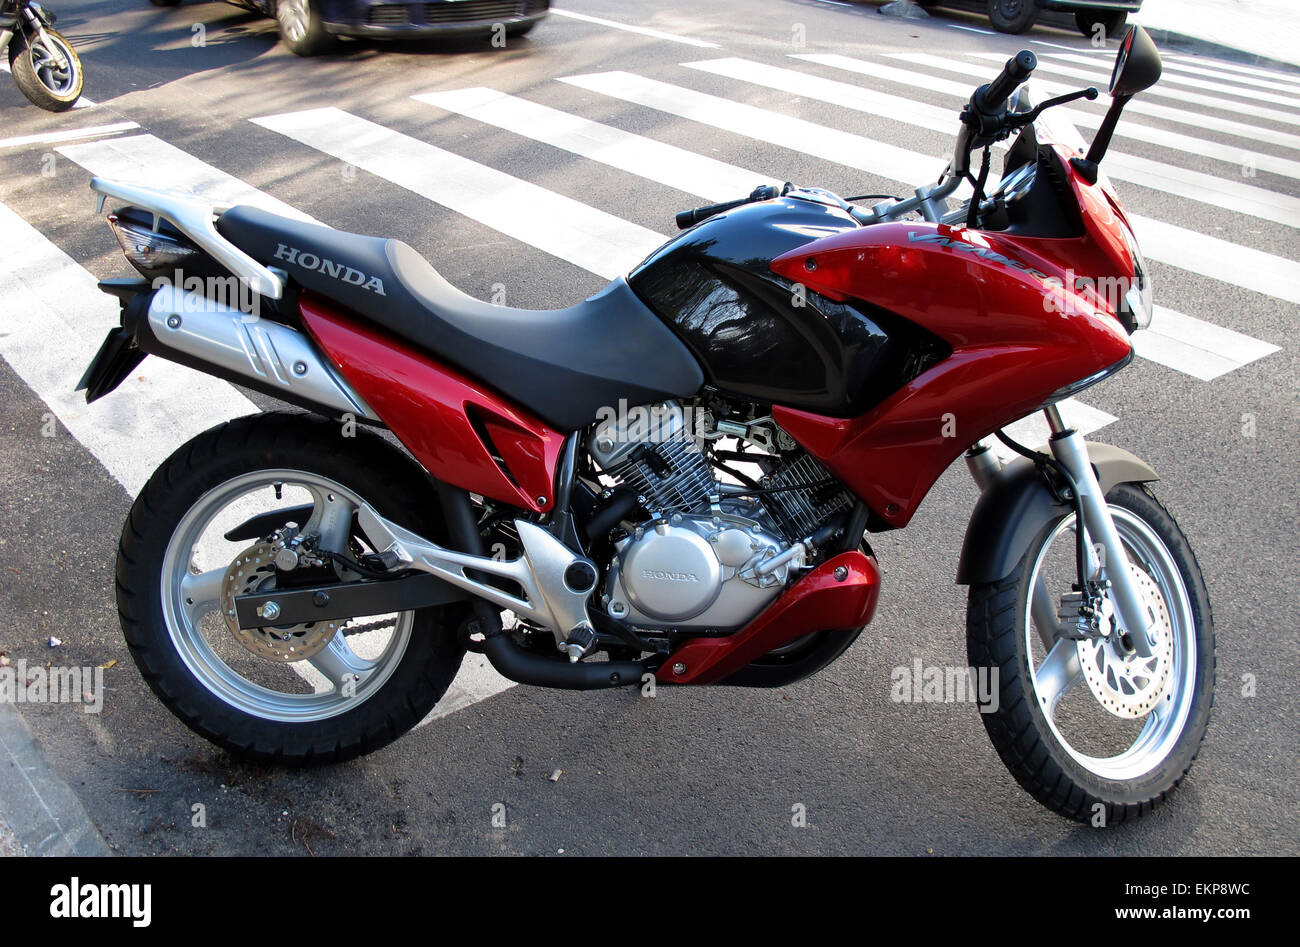 hight resolution of honda varadero 125 parked in front of a pedestrian crossing stock image